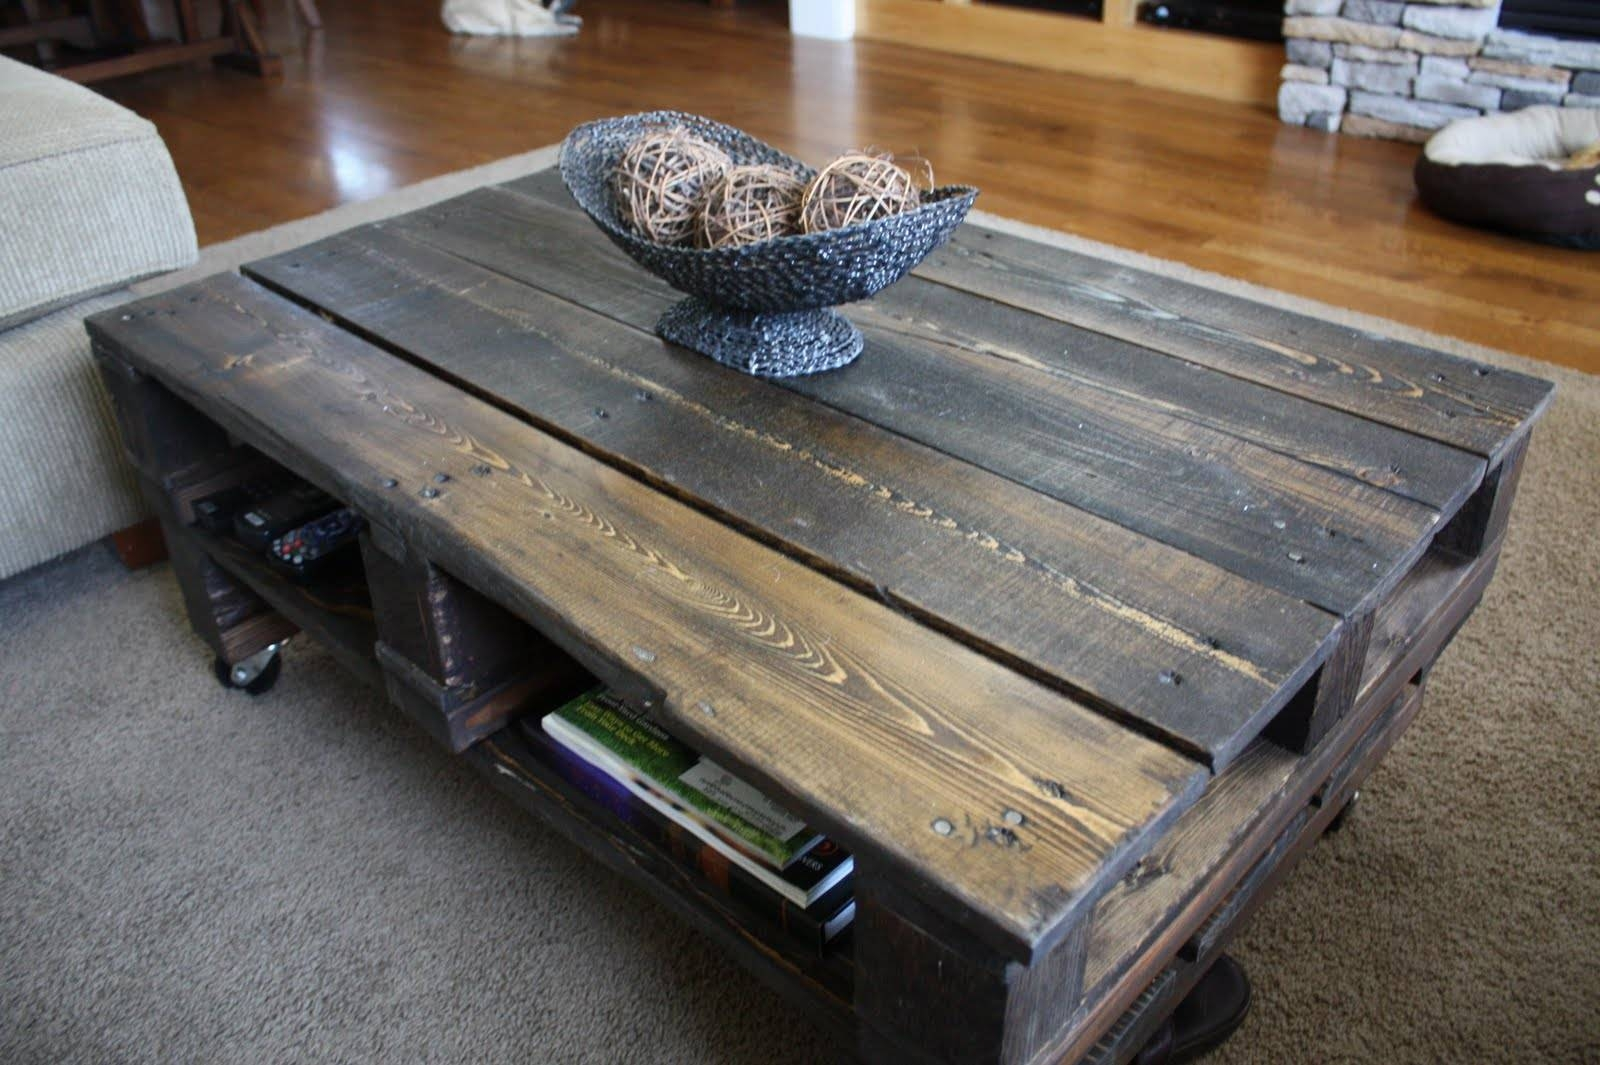 Charming And Homely Rustic Storage Coffee Table | Tedxumkc Decoration pertaining to Rustic Coffee Tables (Image 2 of 14)